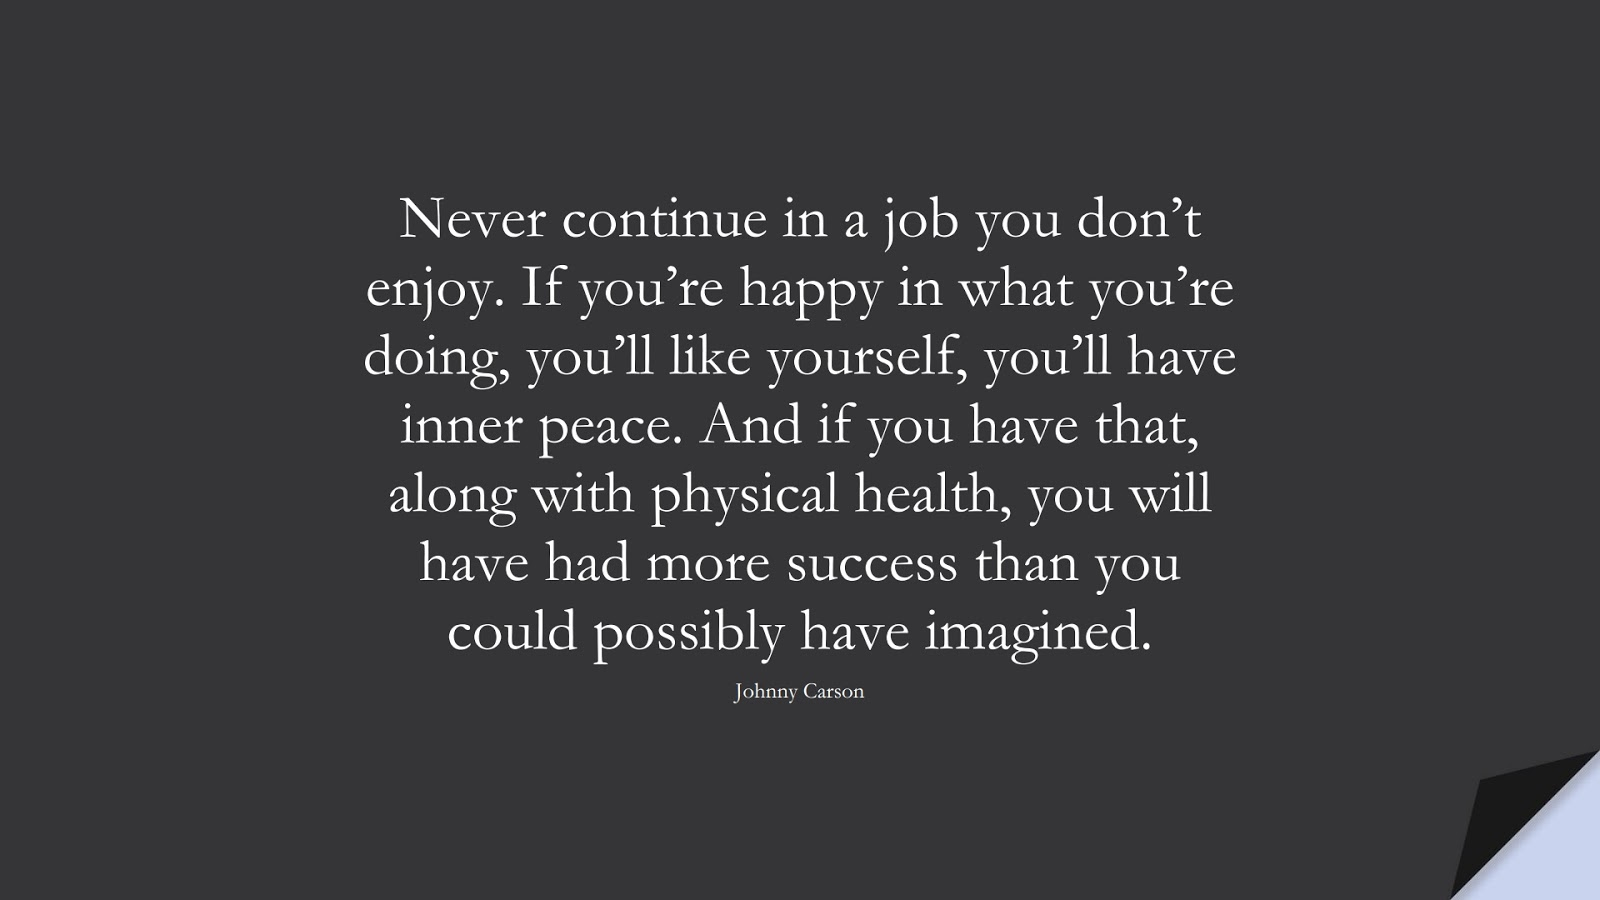 Never continue in a job you don't enjoy. If you're happy in what you're doing, you'll like yourself, you'll have inner peace. And if you have that, along with physical health, you will have had more success than you could possibly have imagined. (Johnny Carson);  #HealthQuotes